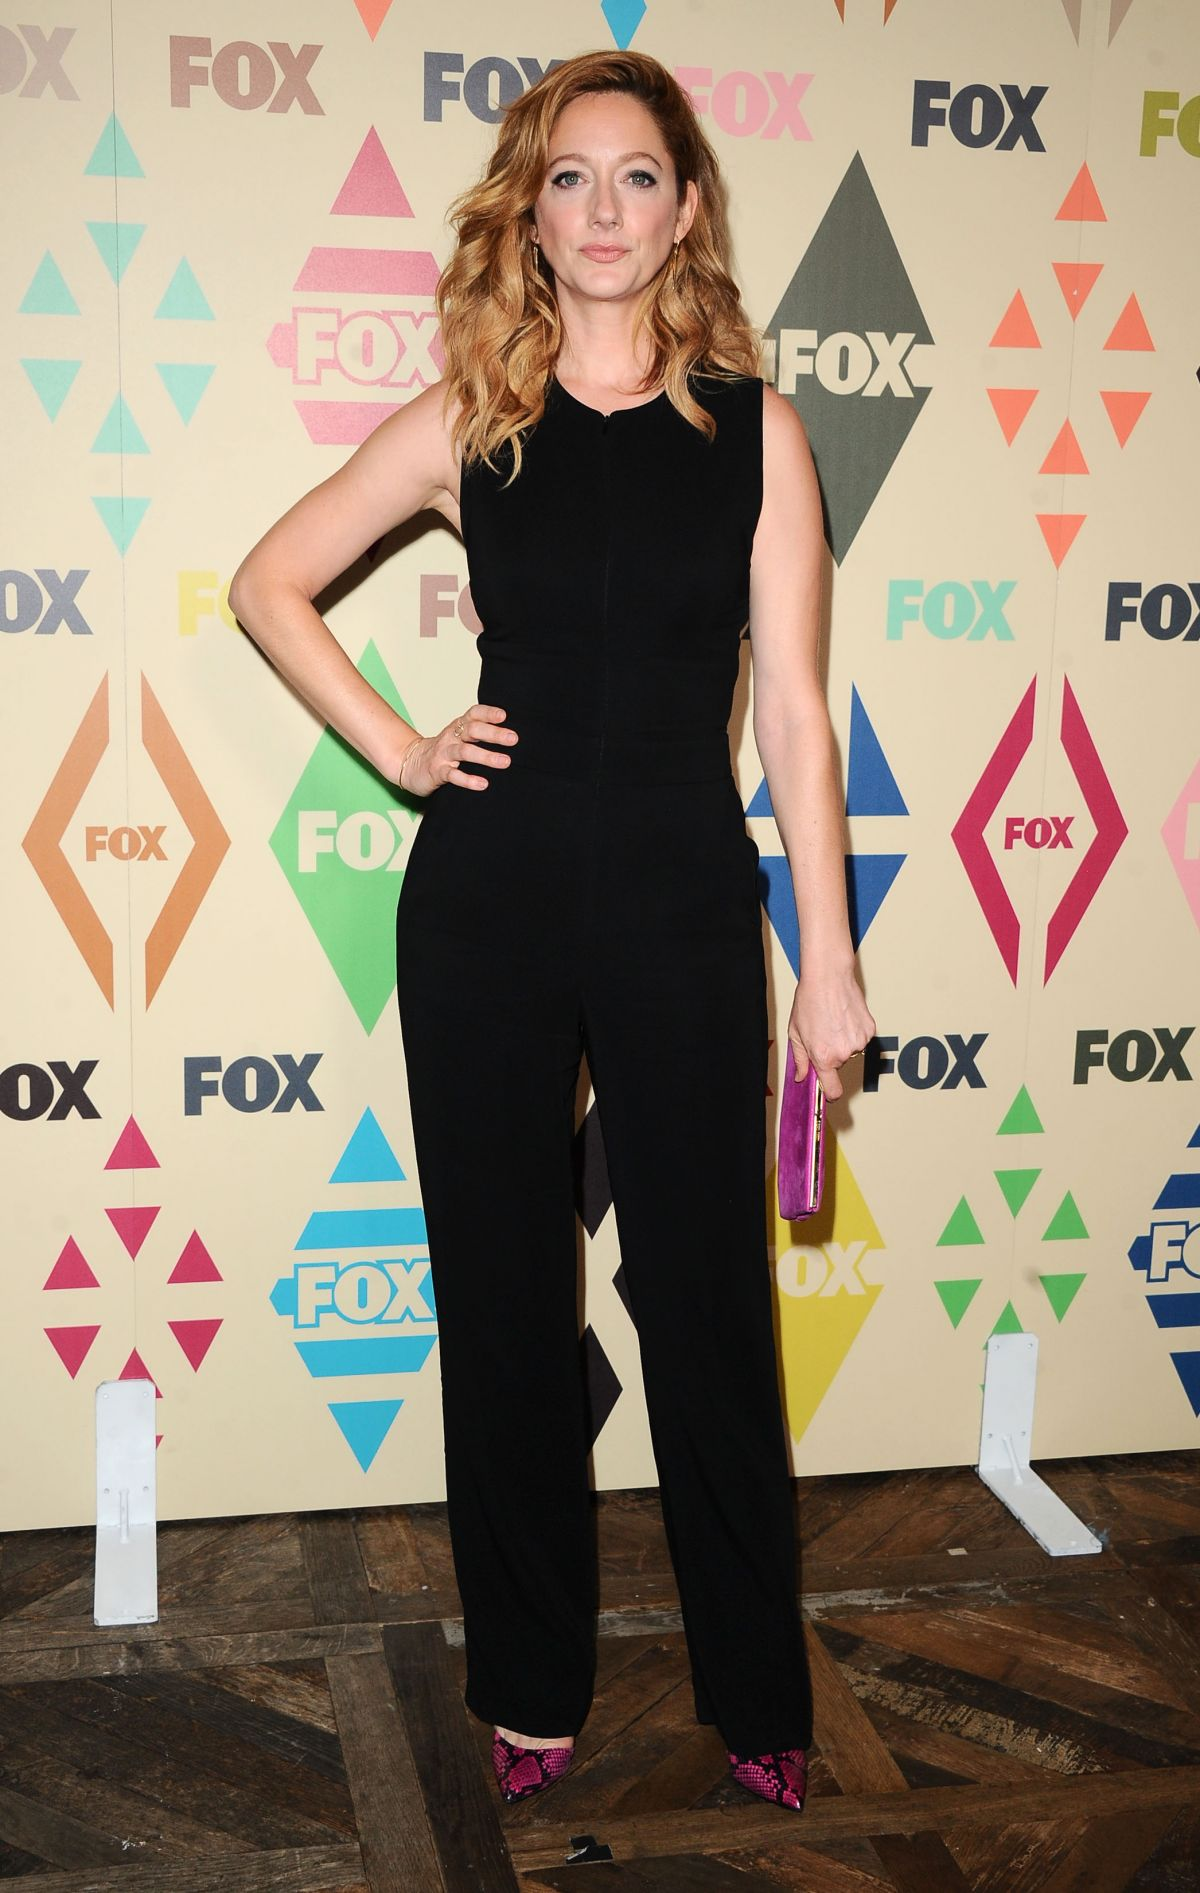 JUDY GREER at Fox/FX Summer 2015 TCA Party in West Hollywood